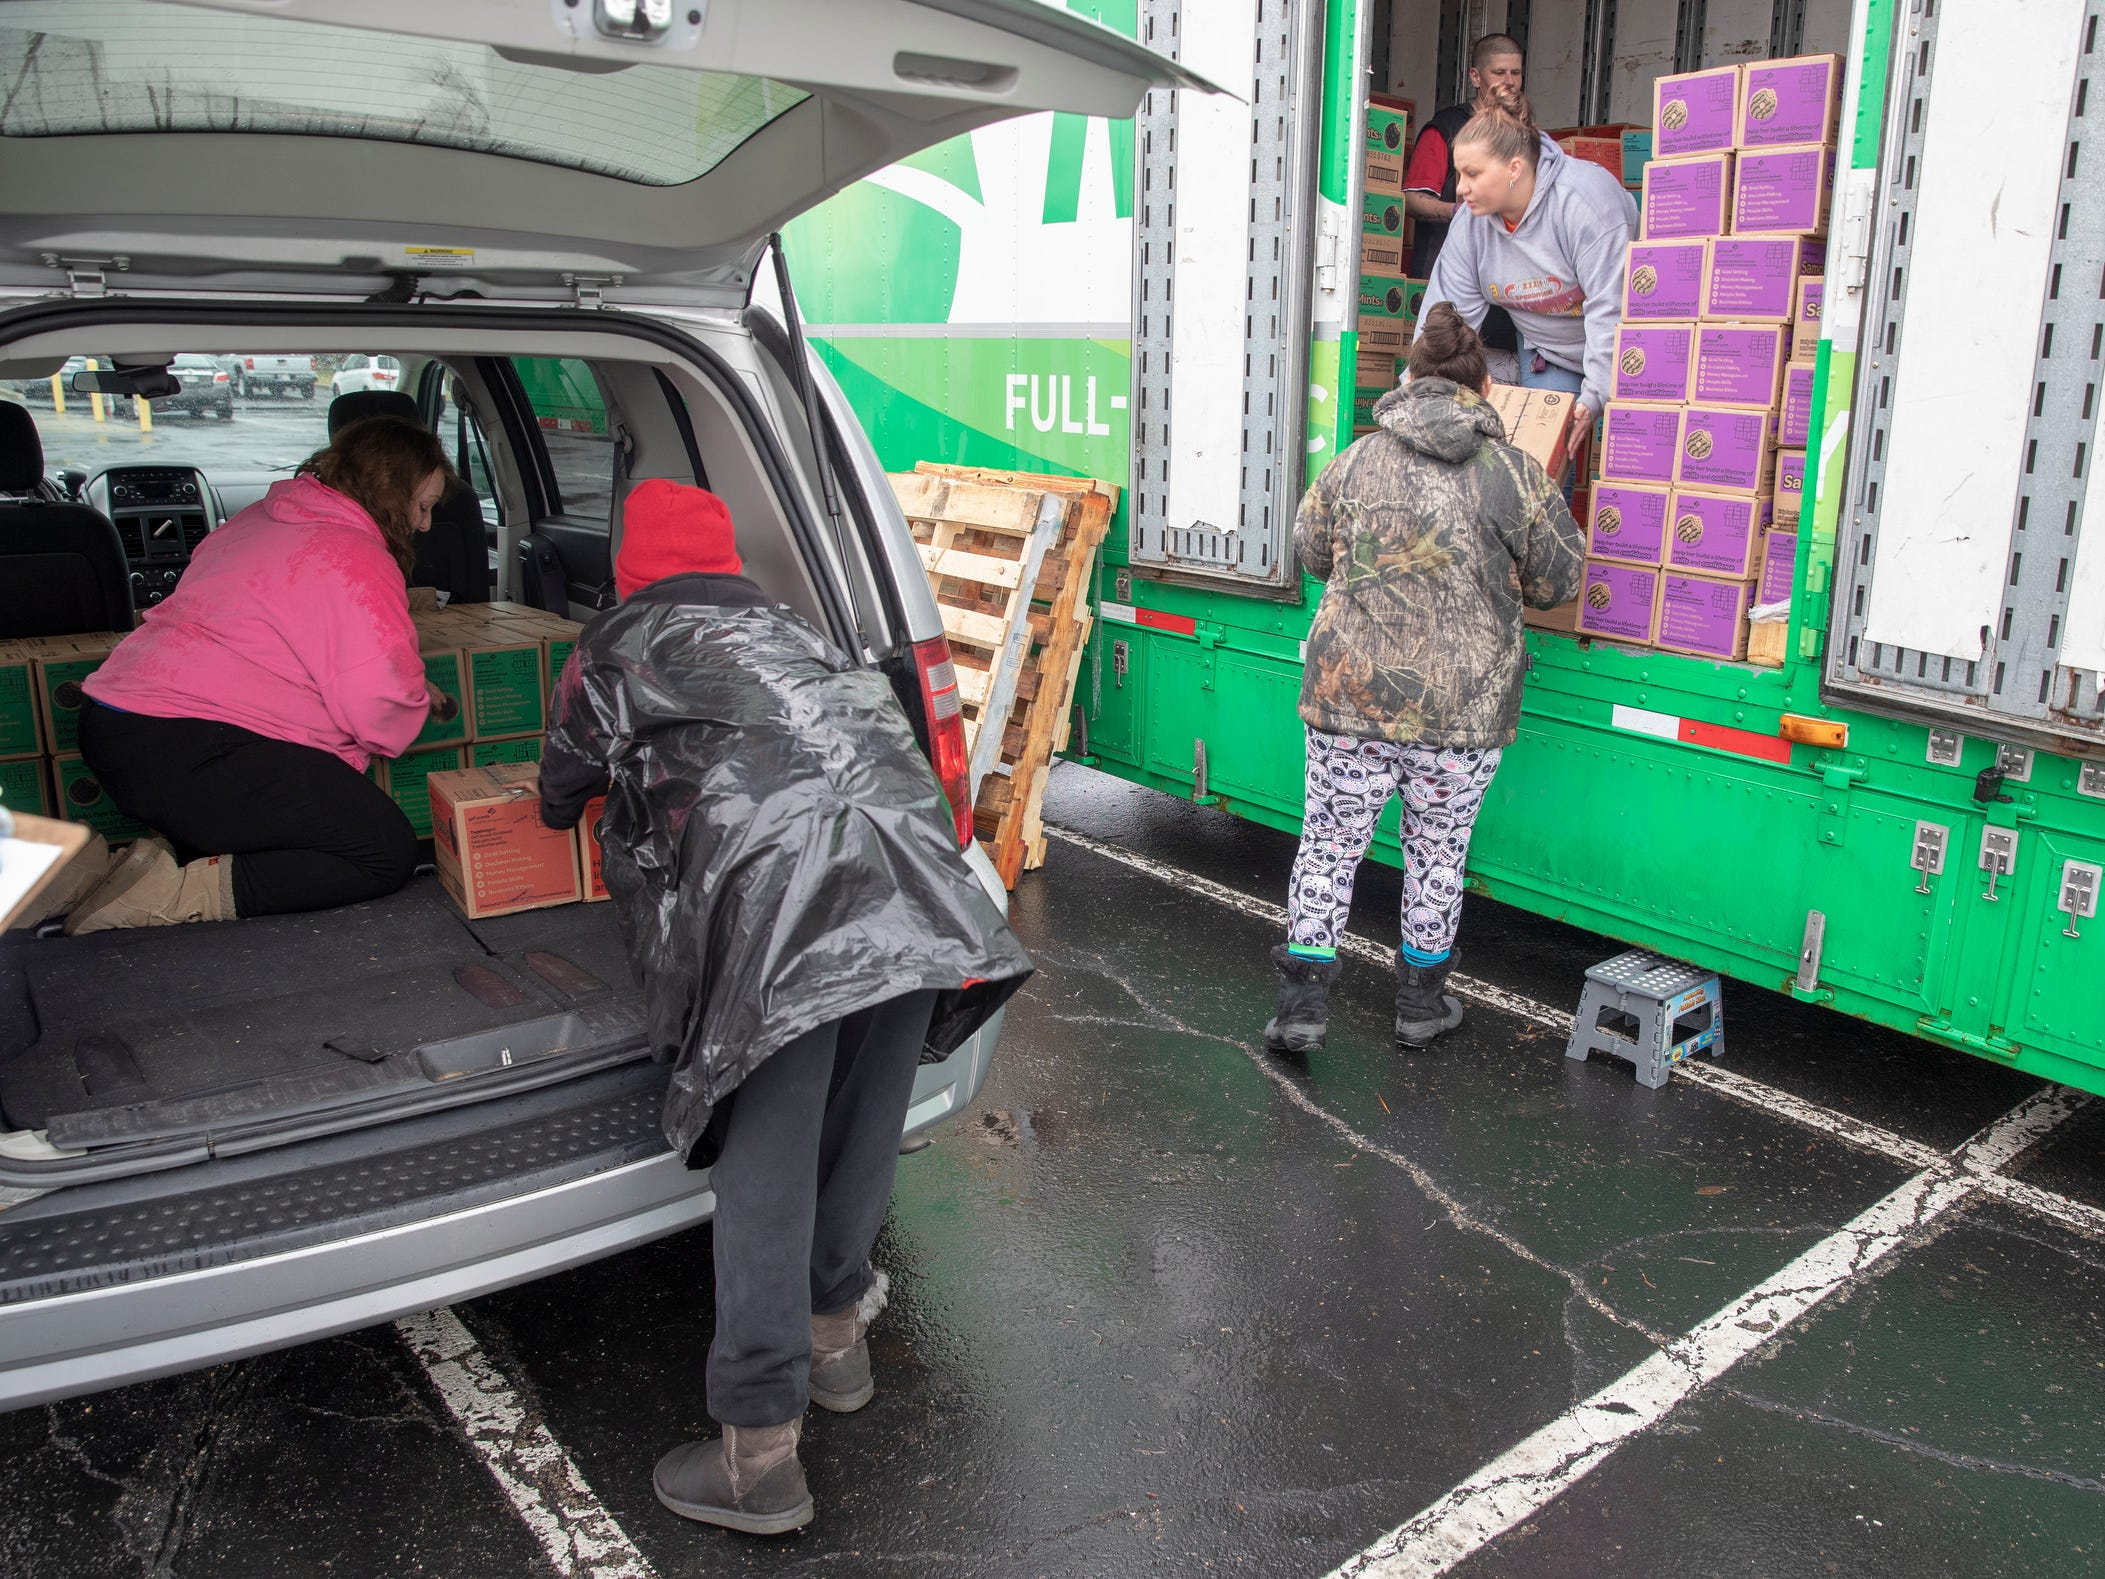 A car is loaded during distribution for Girl Scout Cookies in Indianapolis, Wednesday, Feb. 6, 2019. The cookies will start to appear locally on the weekend, and should last into mid-March.